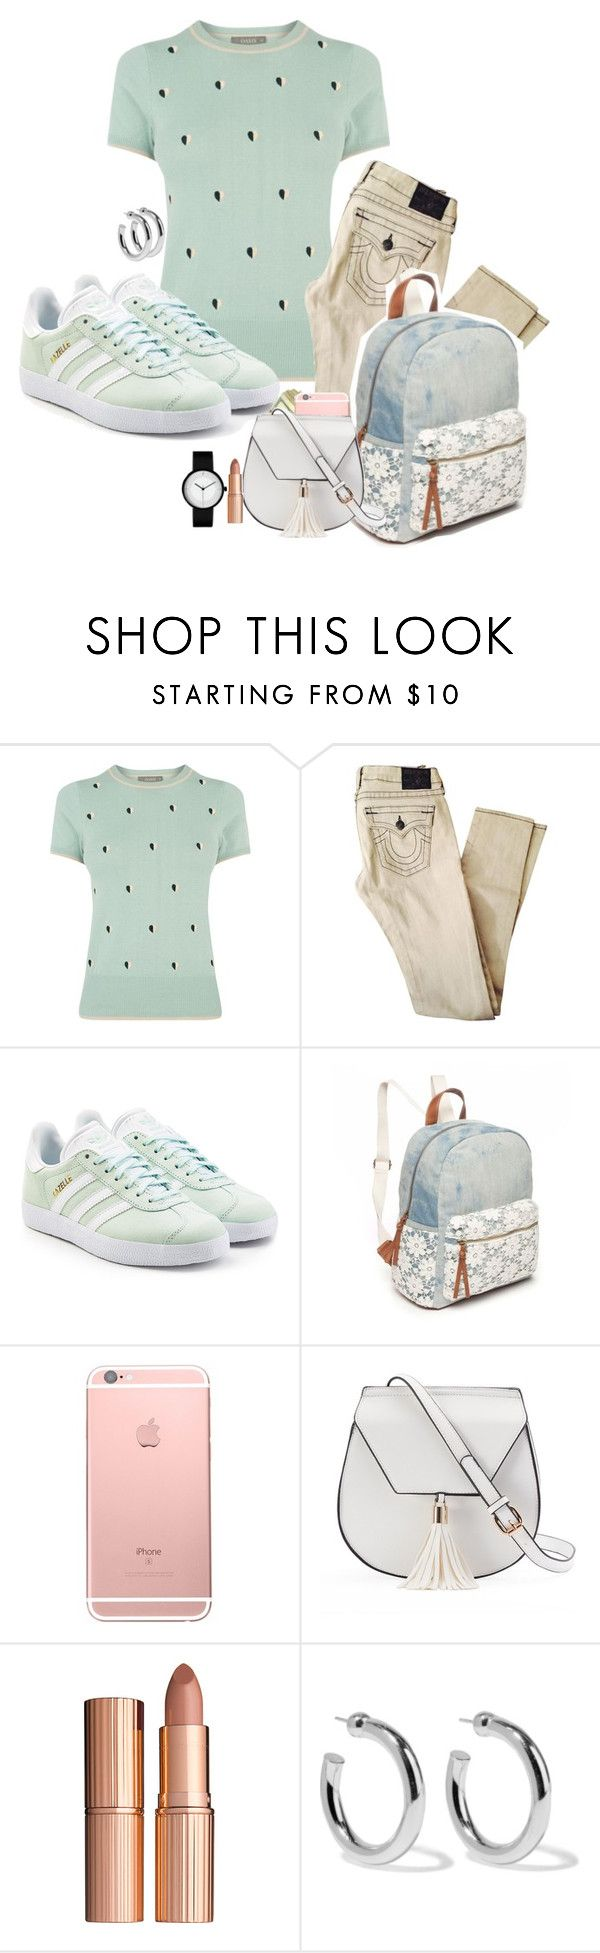 """[199.] Real bad bad b*tch, ain't gotta Photoshop it."" by theristerrr ❤ liked on Polyvore featuring Oasis, adidas Originals, Red Camel, Yoki, Charlotte Tilbury and Sophie Buhai"